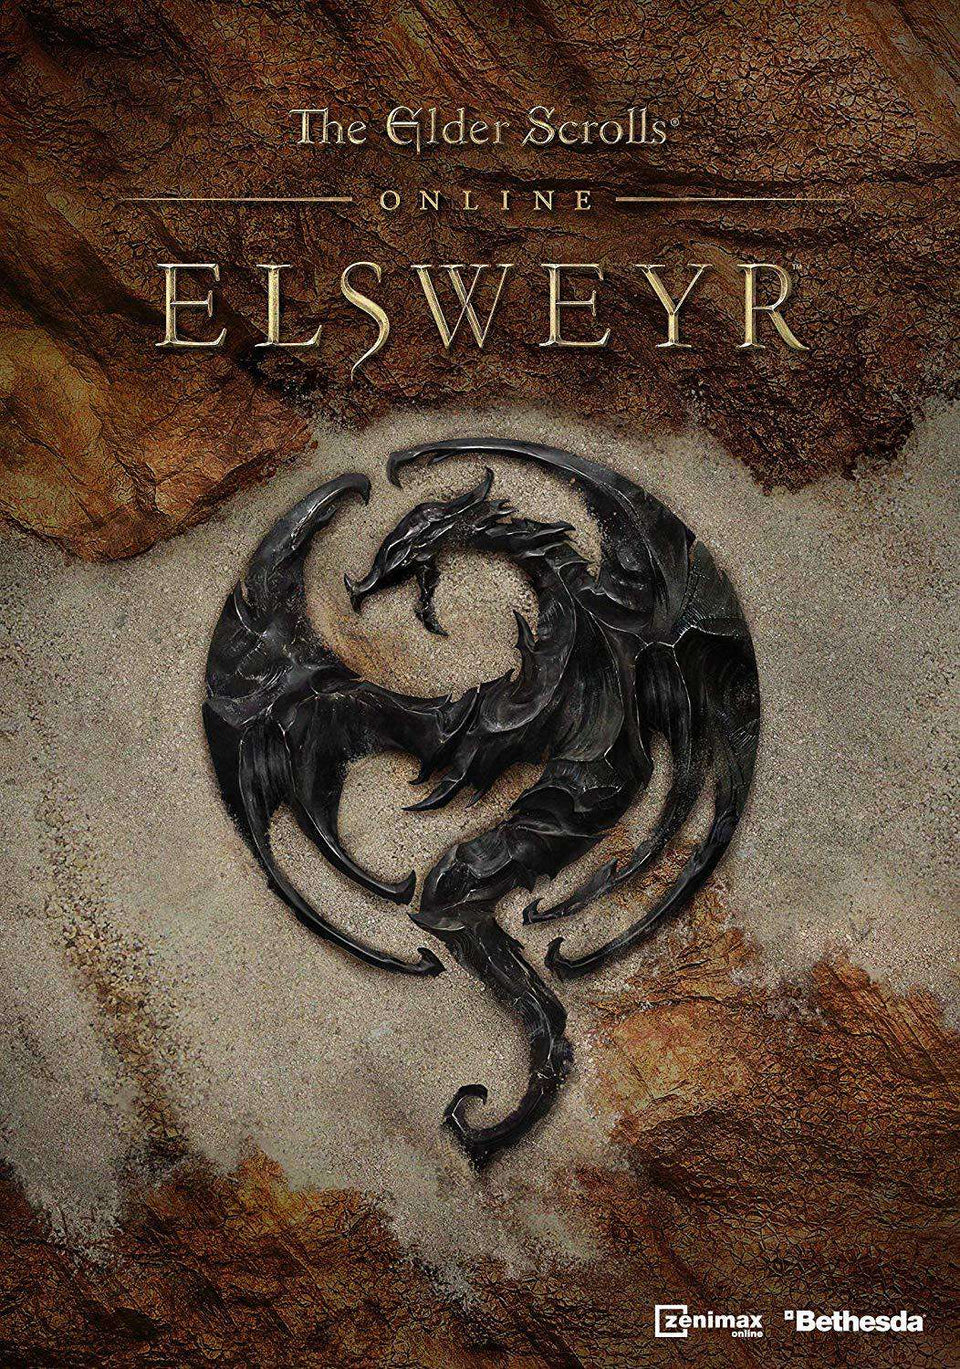 The Elder Scrolls Online: Elsweyr [Online Game Code]